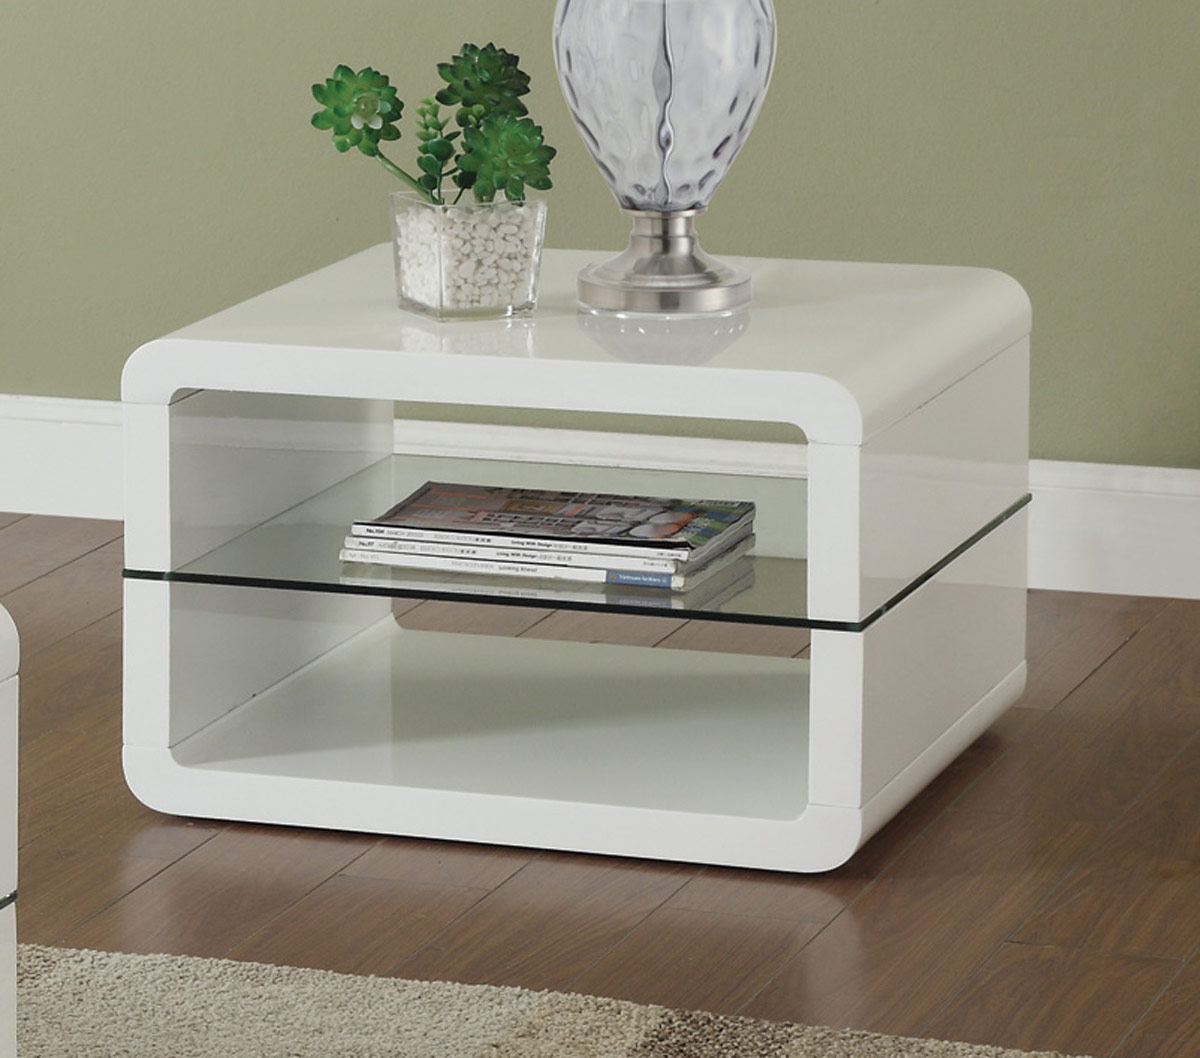 Coaster 703267 End Table - Glossy White